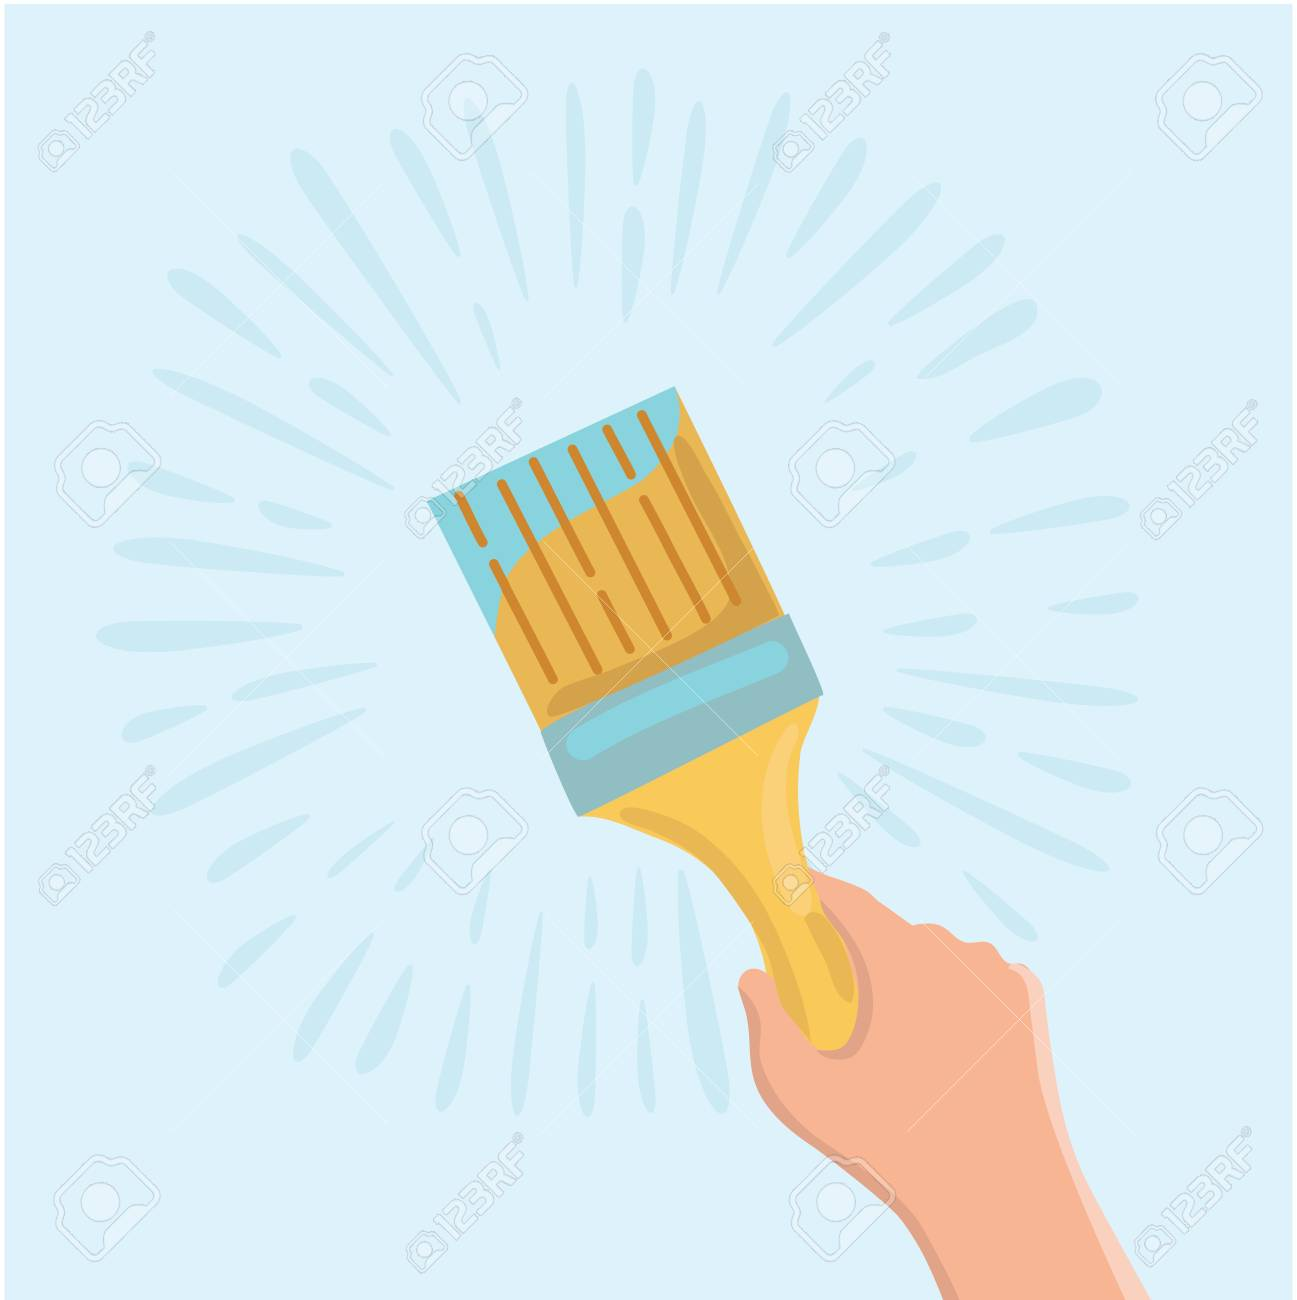 Vector cartoon illustration of paint brush for painting wall